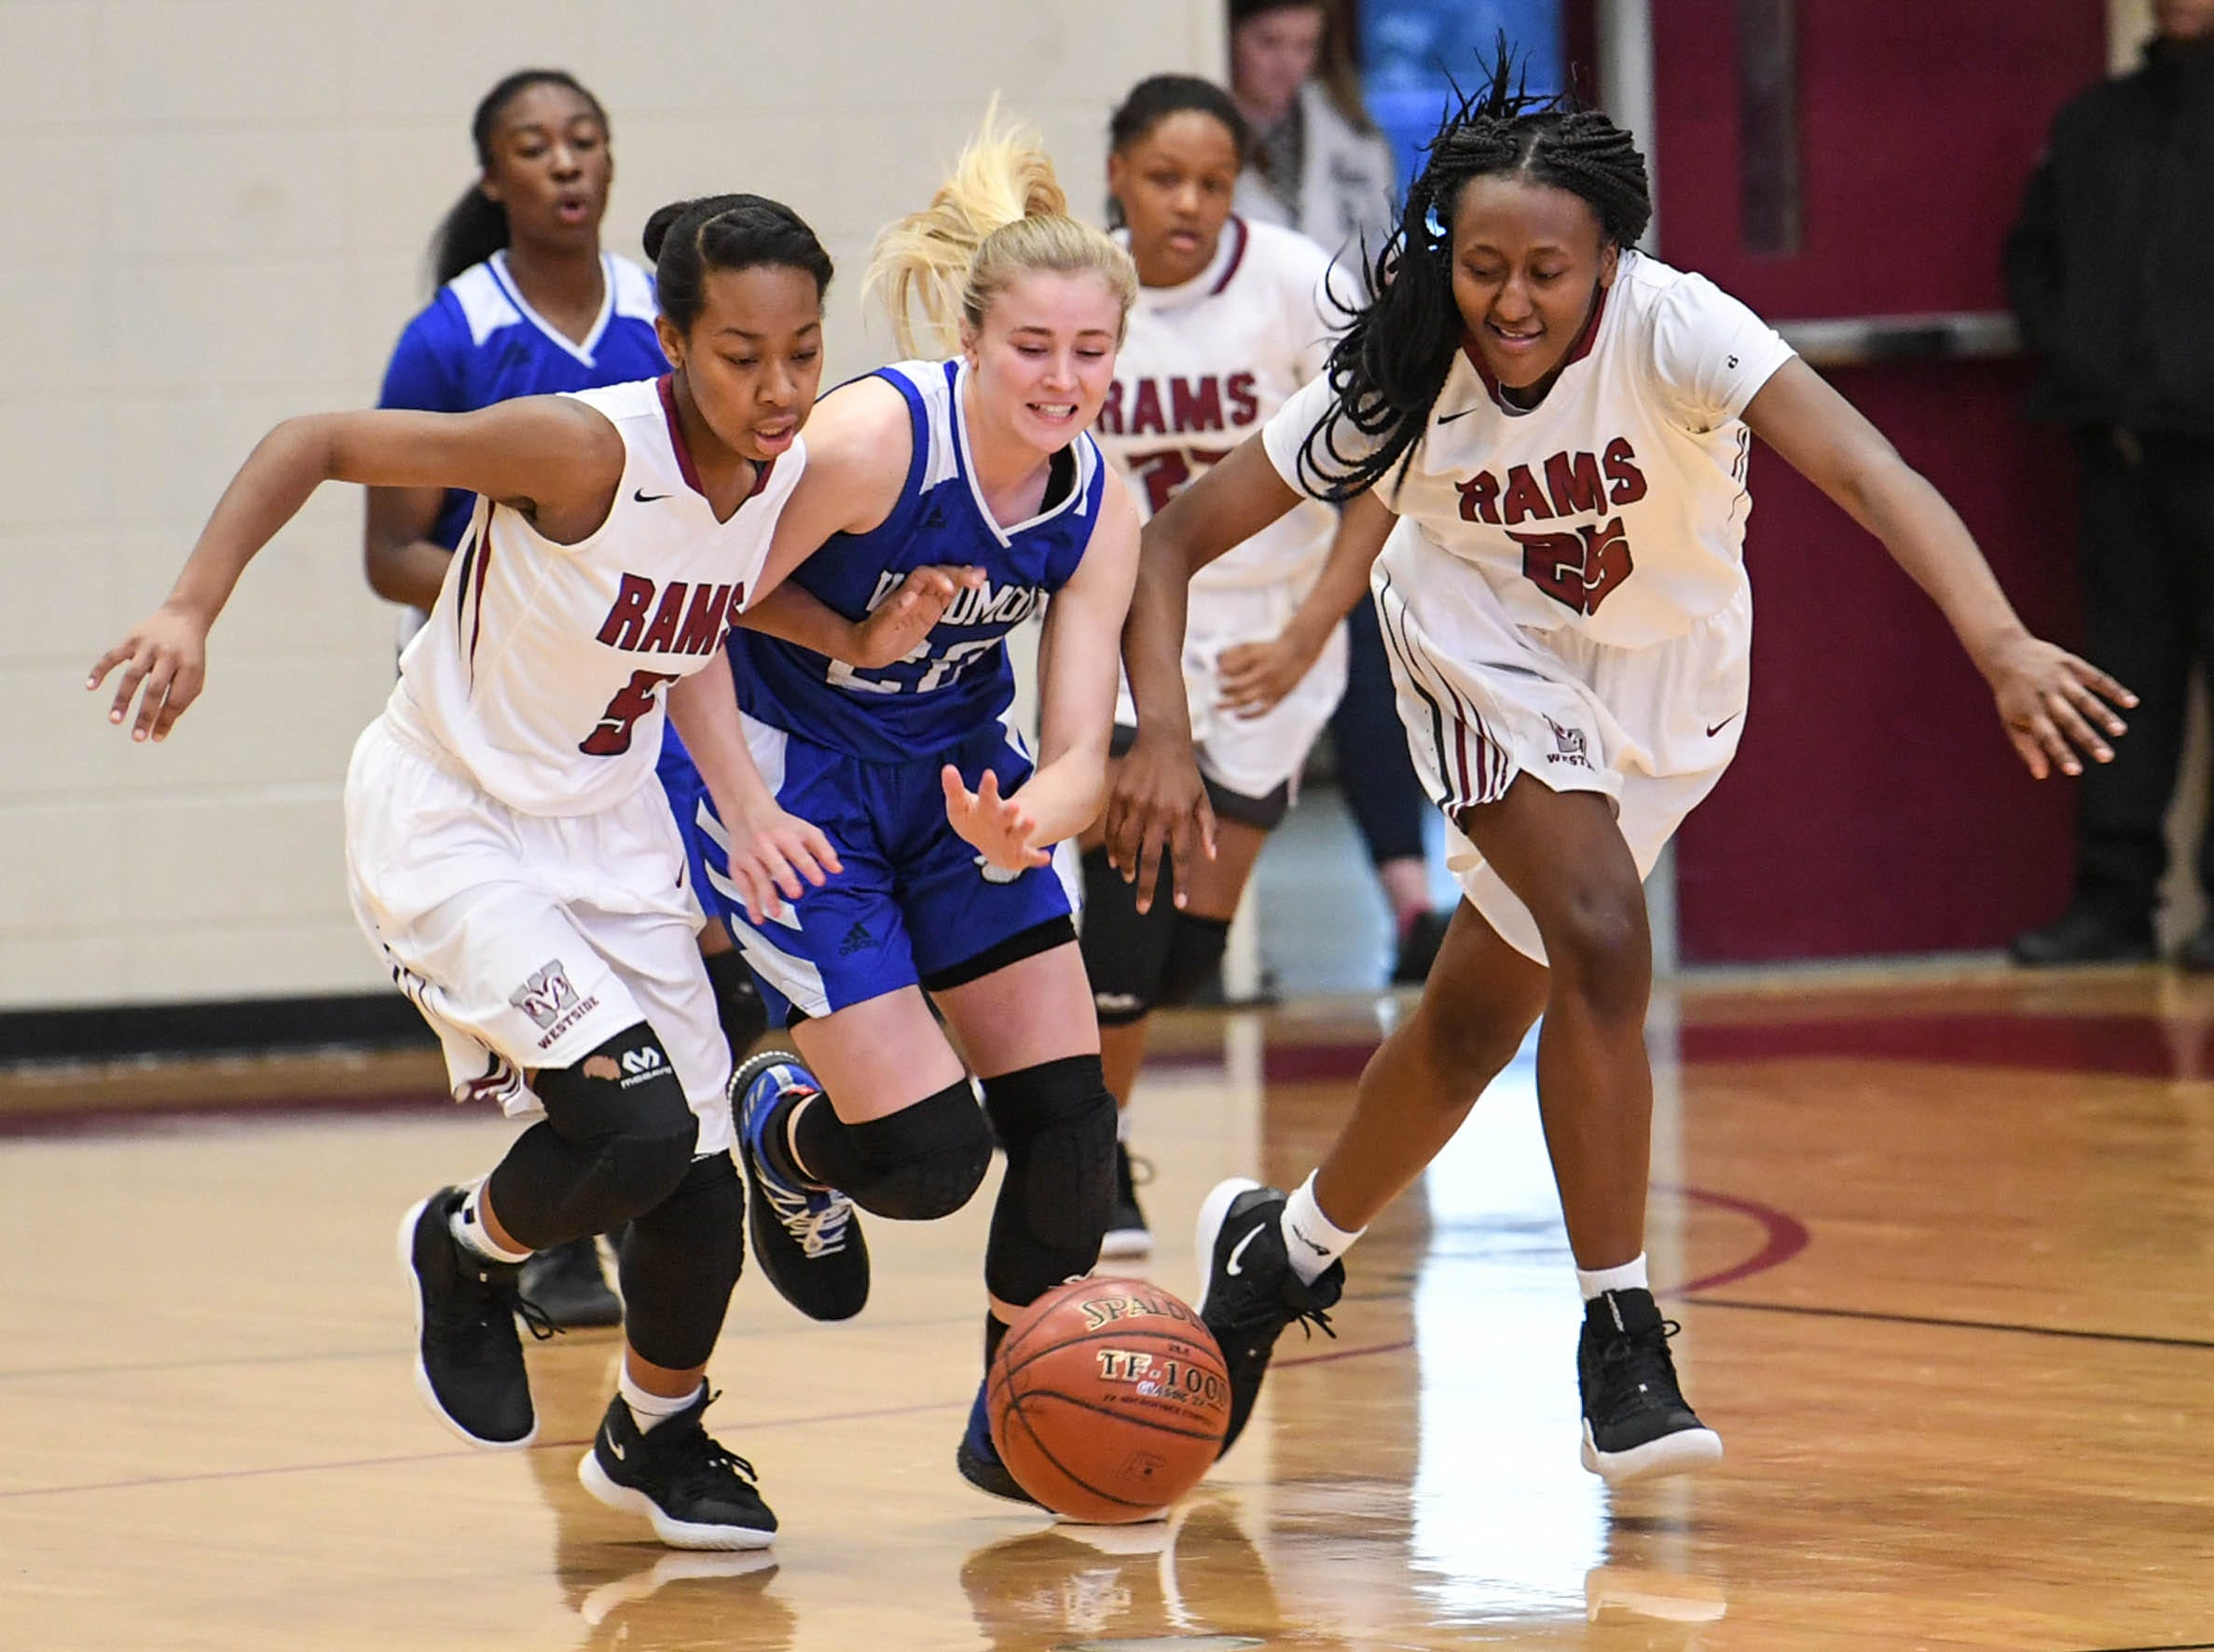 Westside senior Chelsea Adger(5), left, Woodmont senior Xan Rowland(20), and Westside junior Keyshuna Fair(25) reach for a loose ball during the first quarter at Westside High School in Anderson on Tuesday.